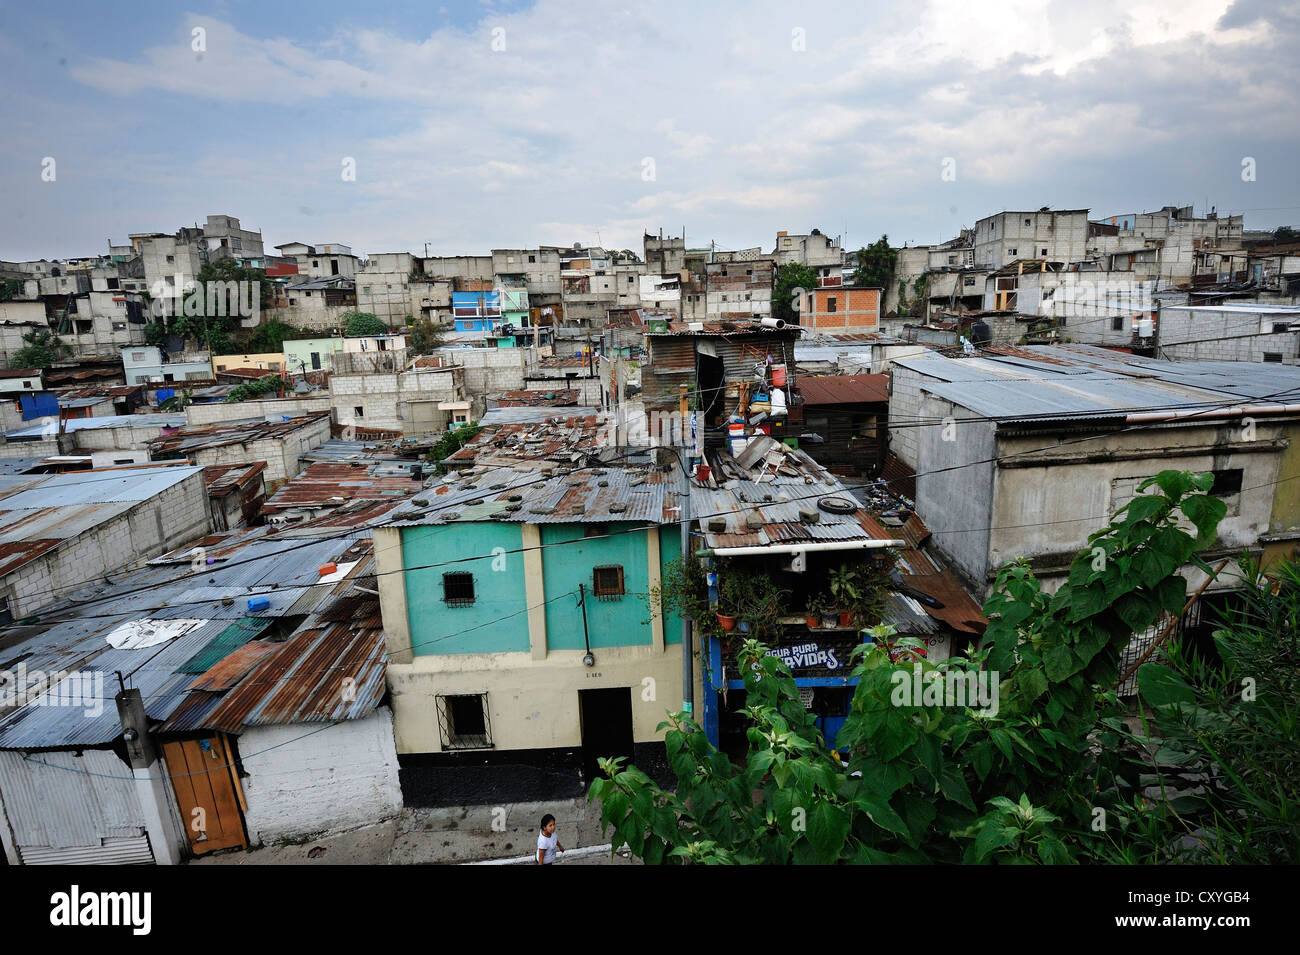 Corrugated iron roofs, El Esfuerzo slum, the disrict is controlled by rivalling gangs of youths, Maras, Zona 5, - Stock Image